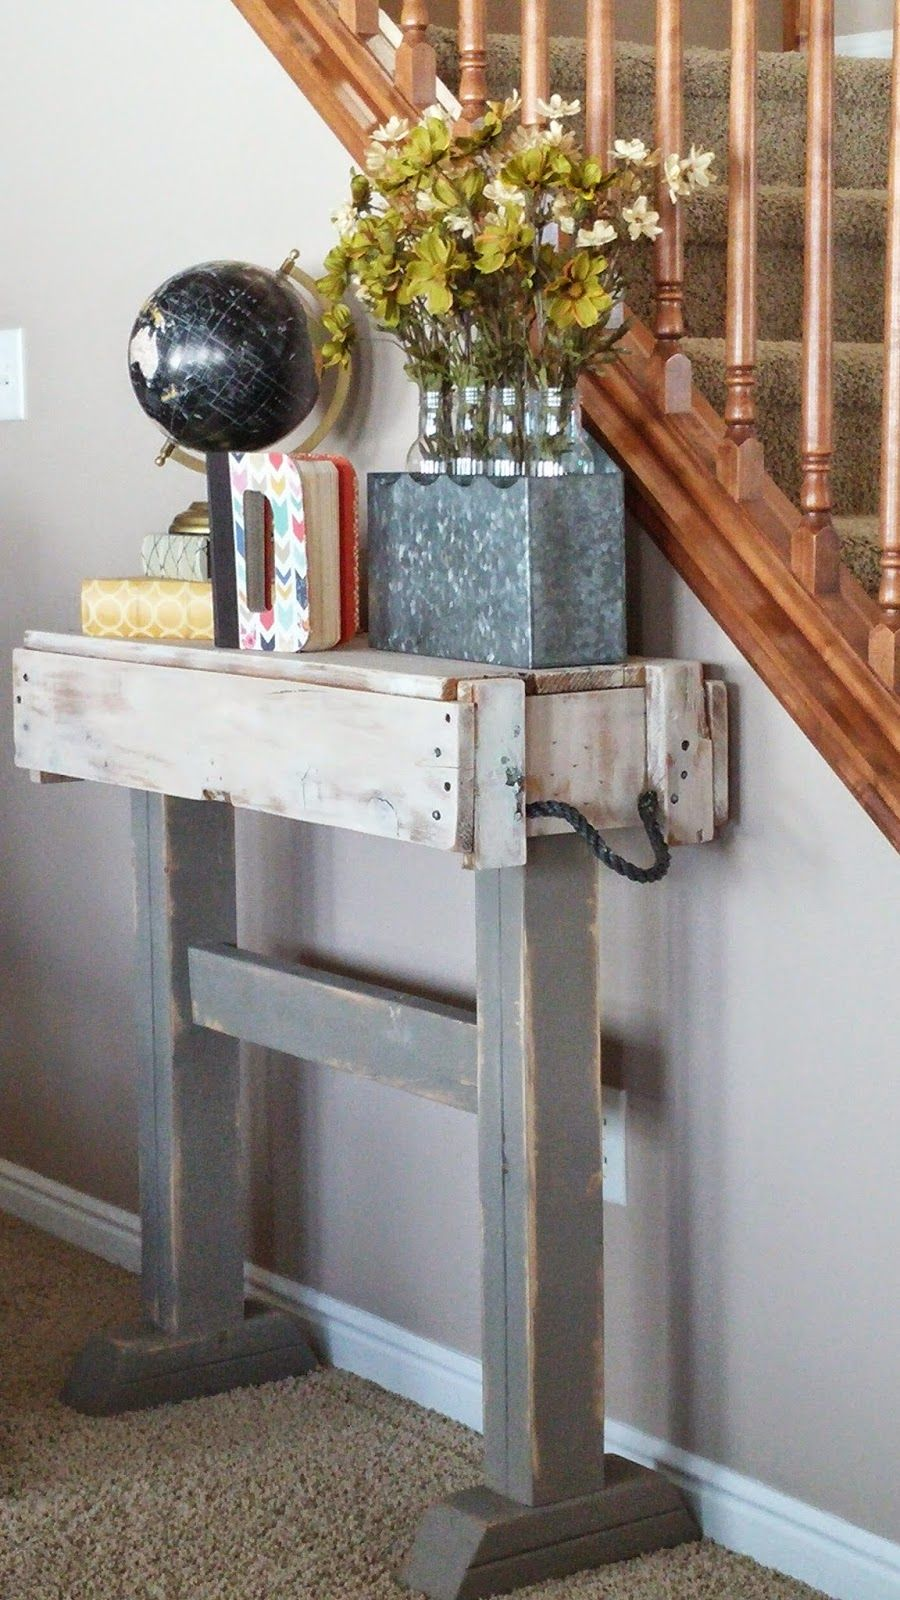 West Creek Design … in 2019 | Diy wooden projects ...